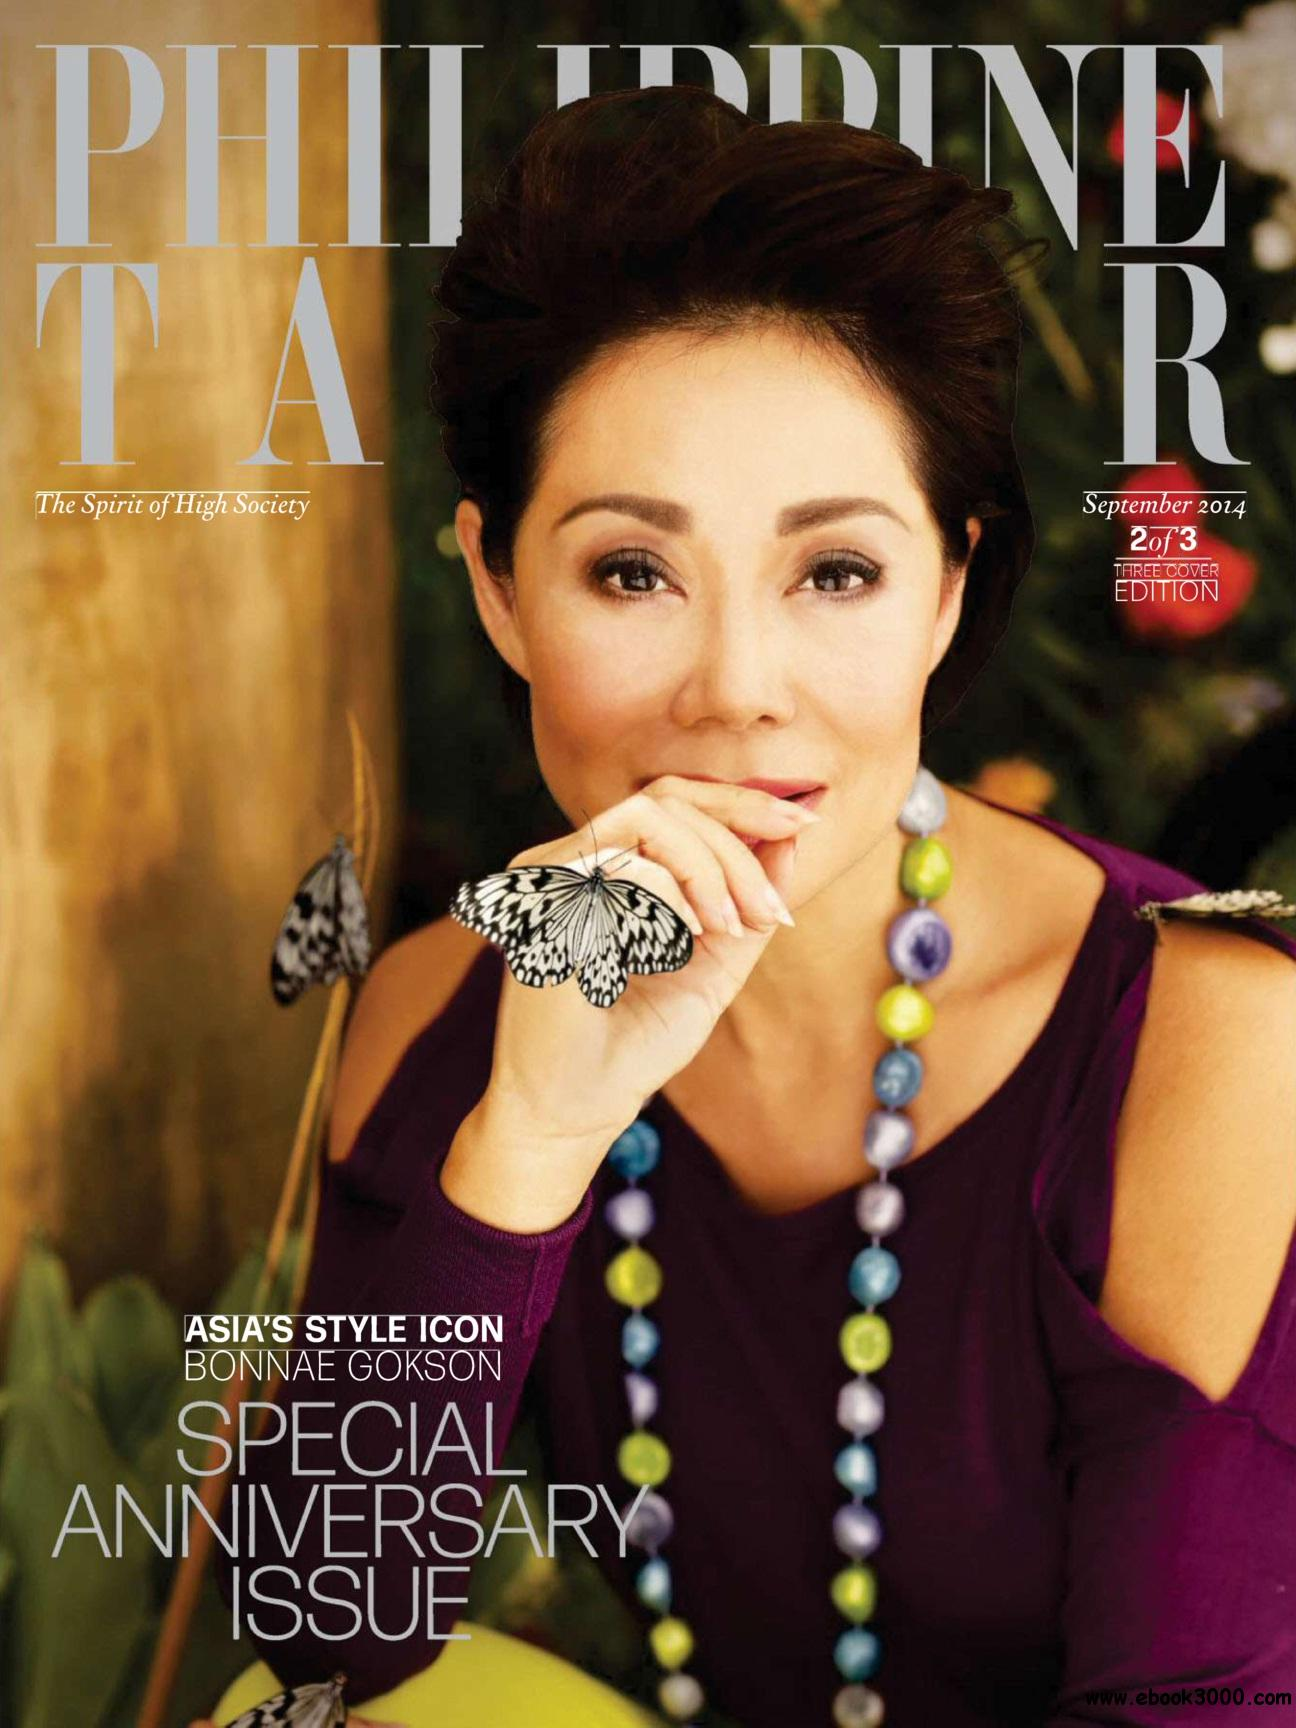 Philippine Tatler - September 2014 free download